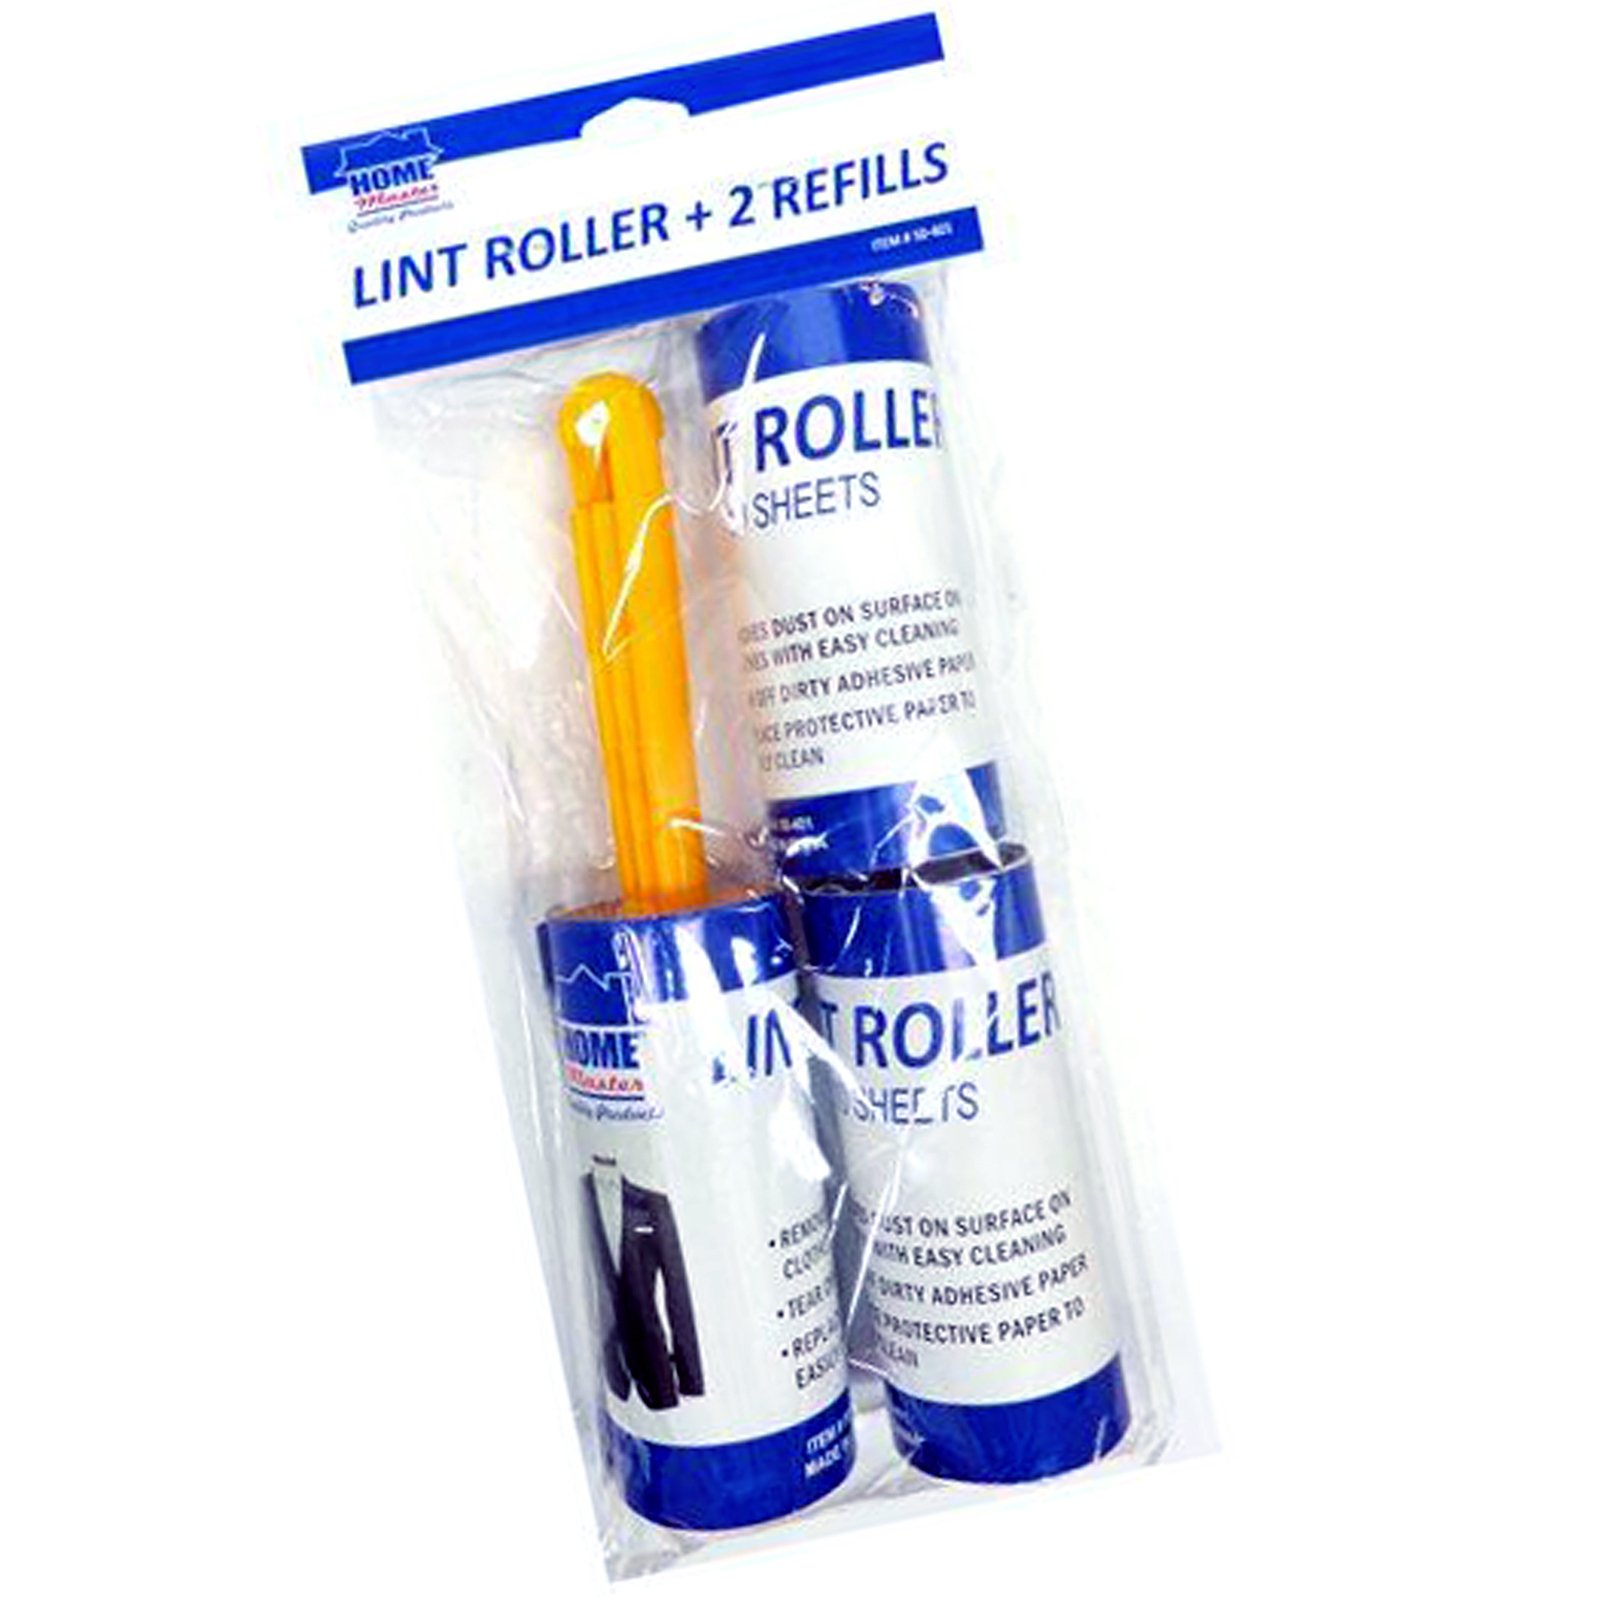 Universal Home Lint Roller and 2 Refills 10 Sheets Per Roll